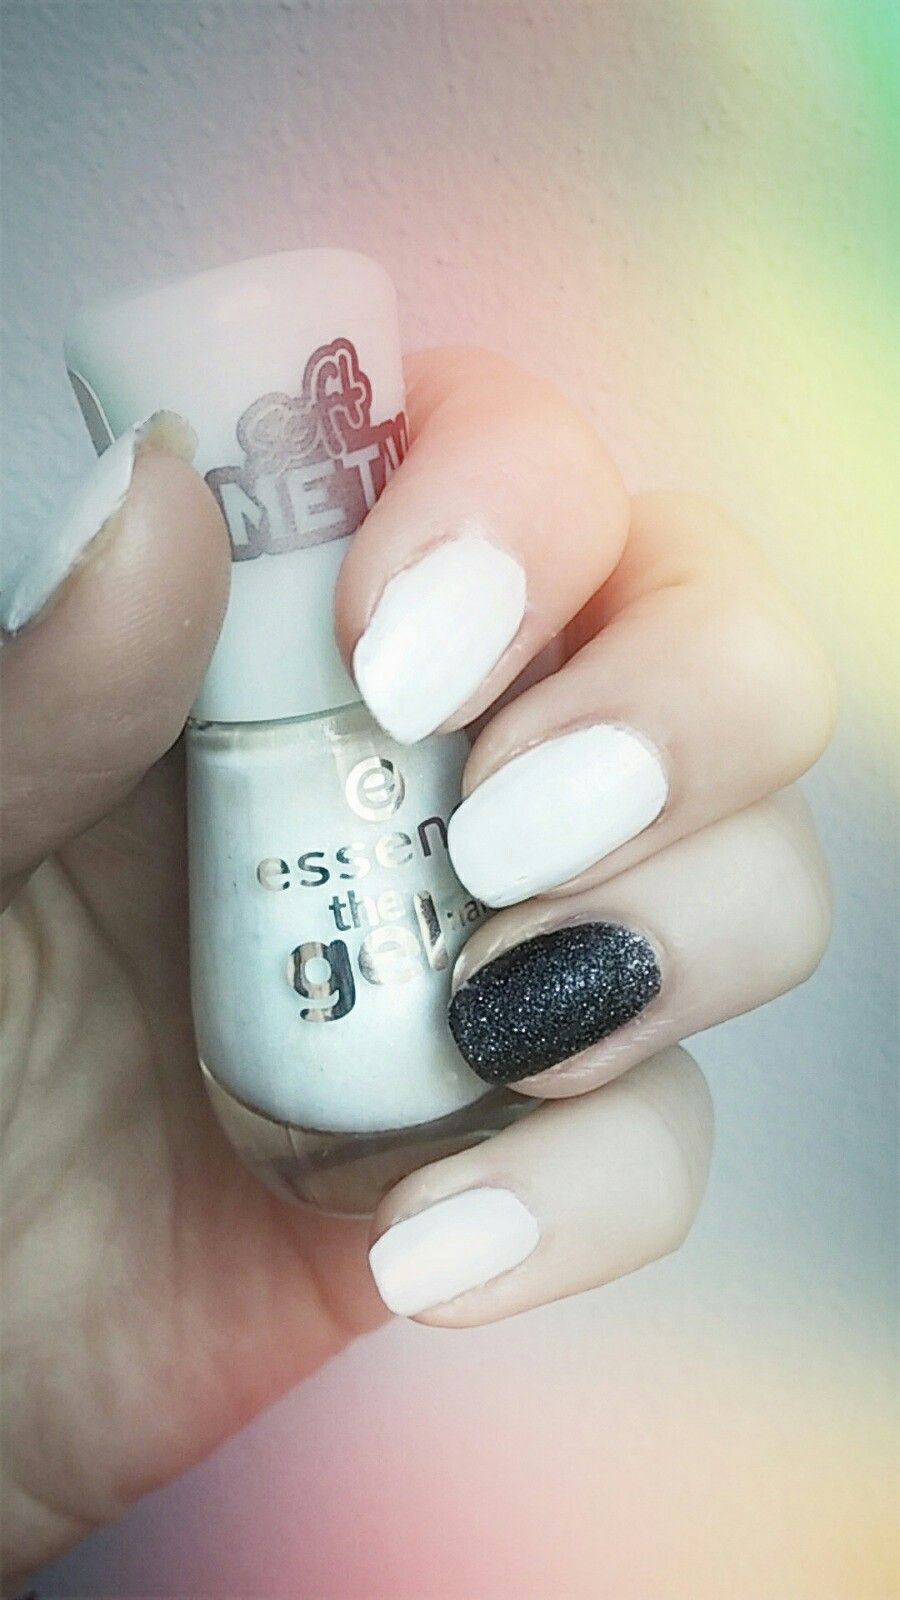 Love This Two Awesome Nailpolish Essence Soft Metal Edition Miss Sporty Crush On You 3d Texture Nails Nailpolish Fashion Cute White Black Trol